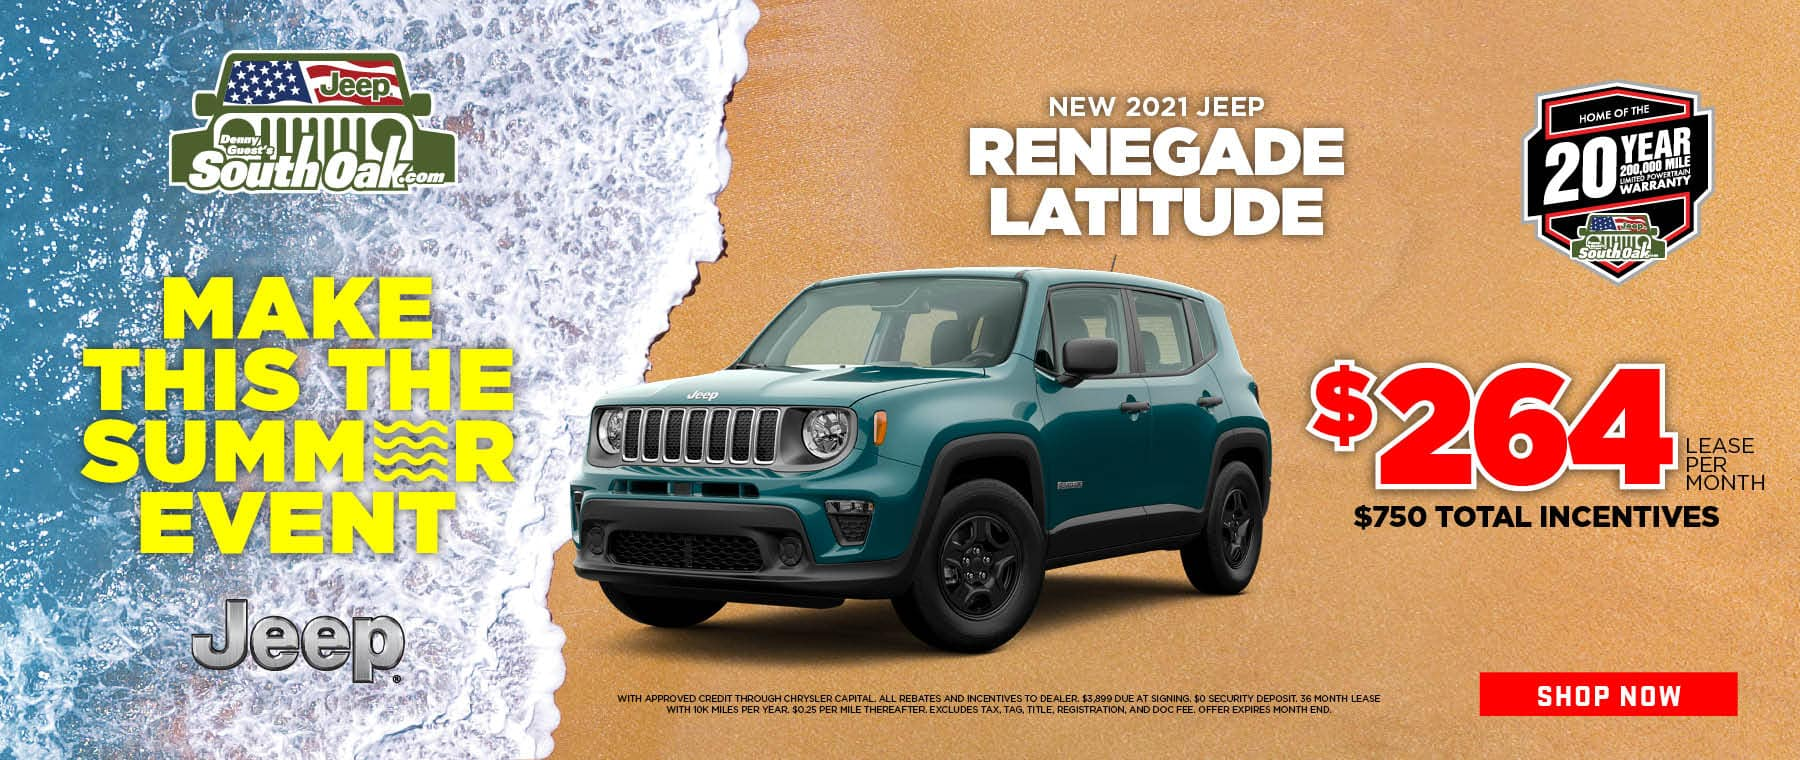 2021 Jeep Renegade Lease Deal